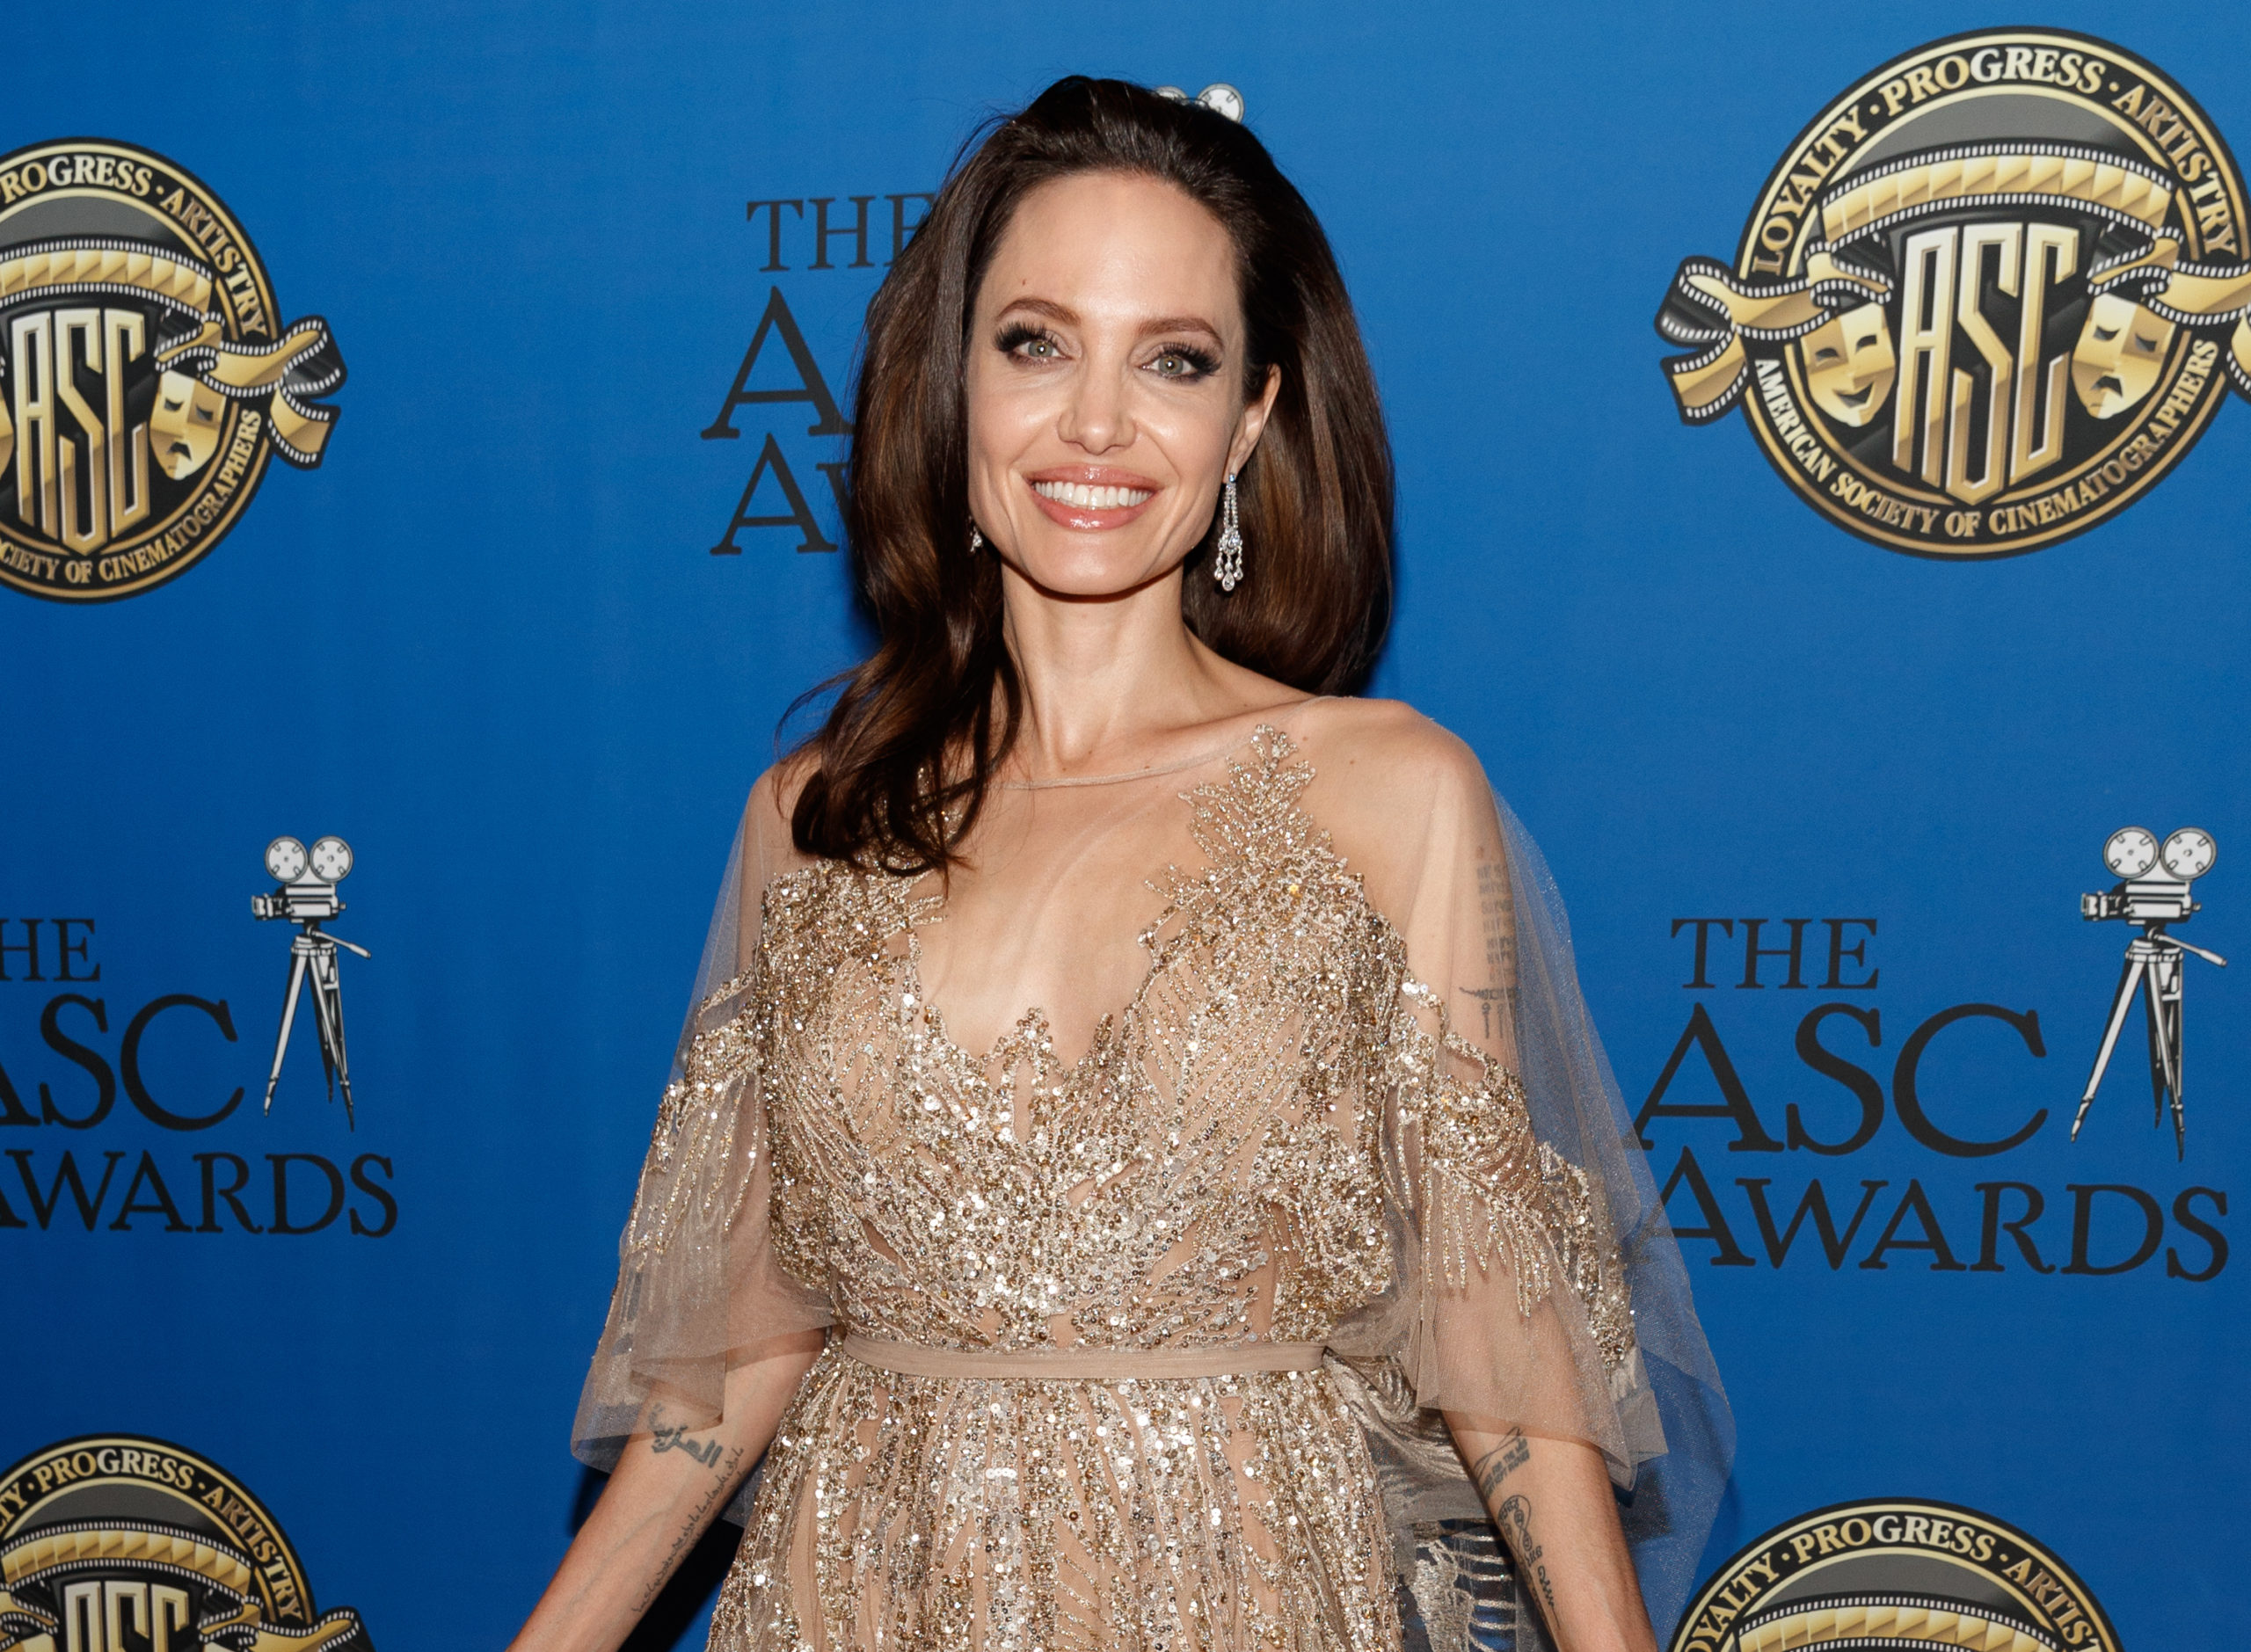 Buon compleanno Angelina Jolie